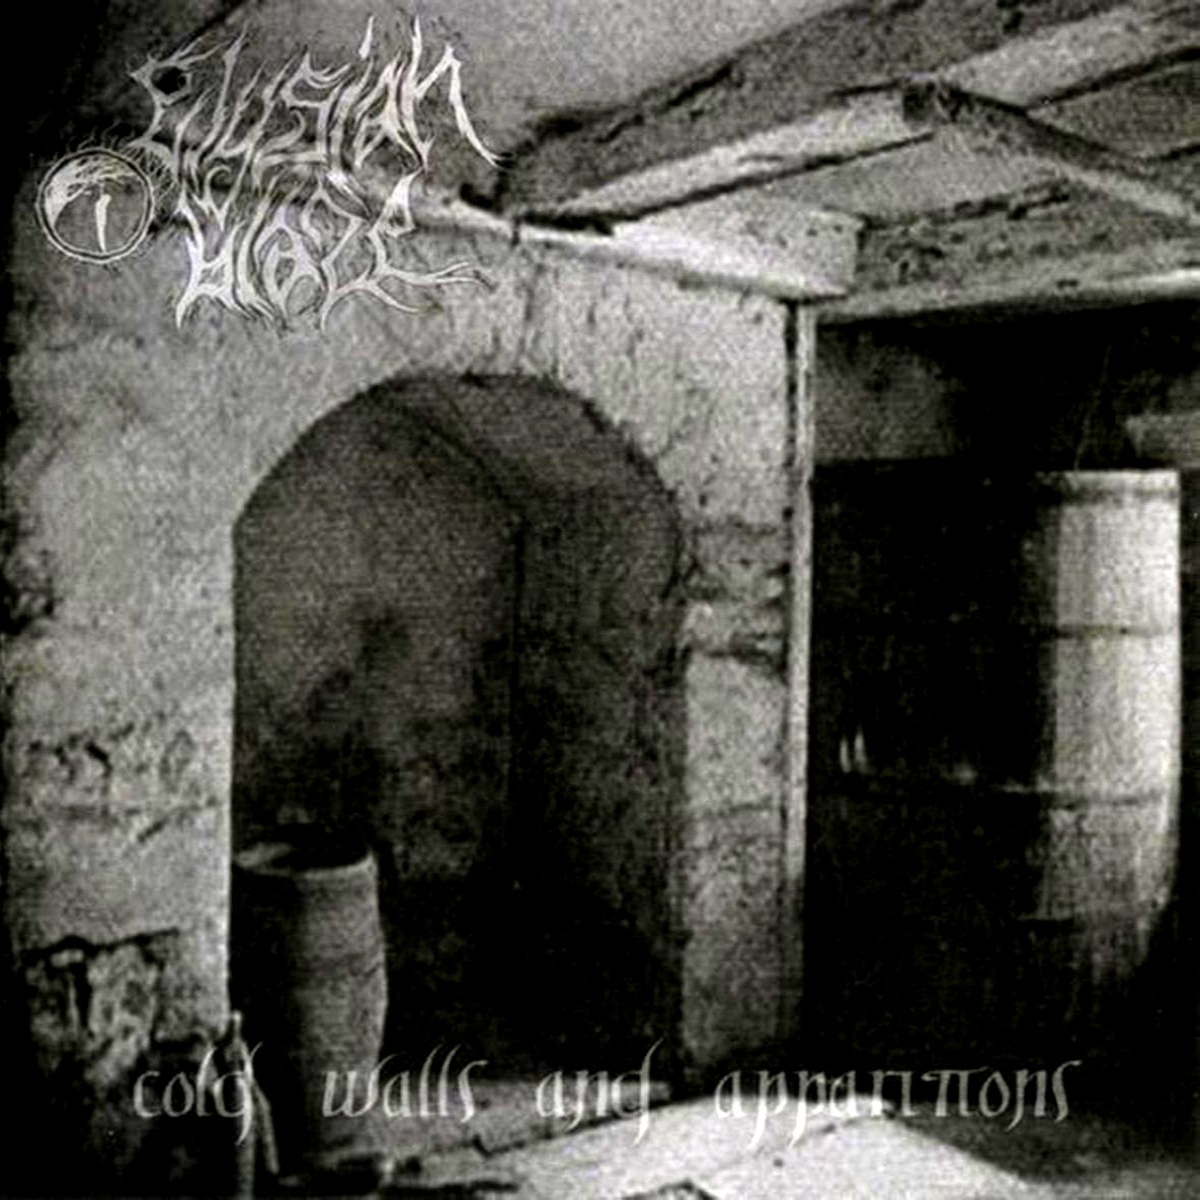 Review for Elysian Blaze - Cold Walls and Apparitions